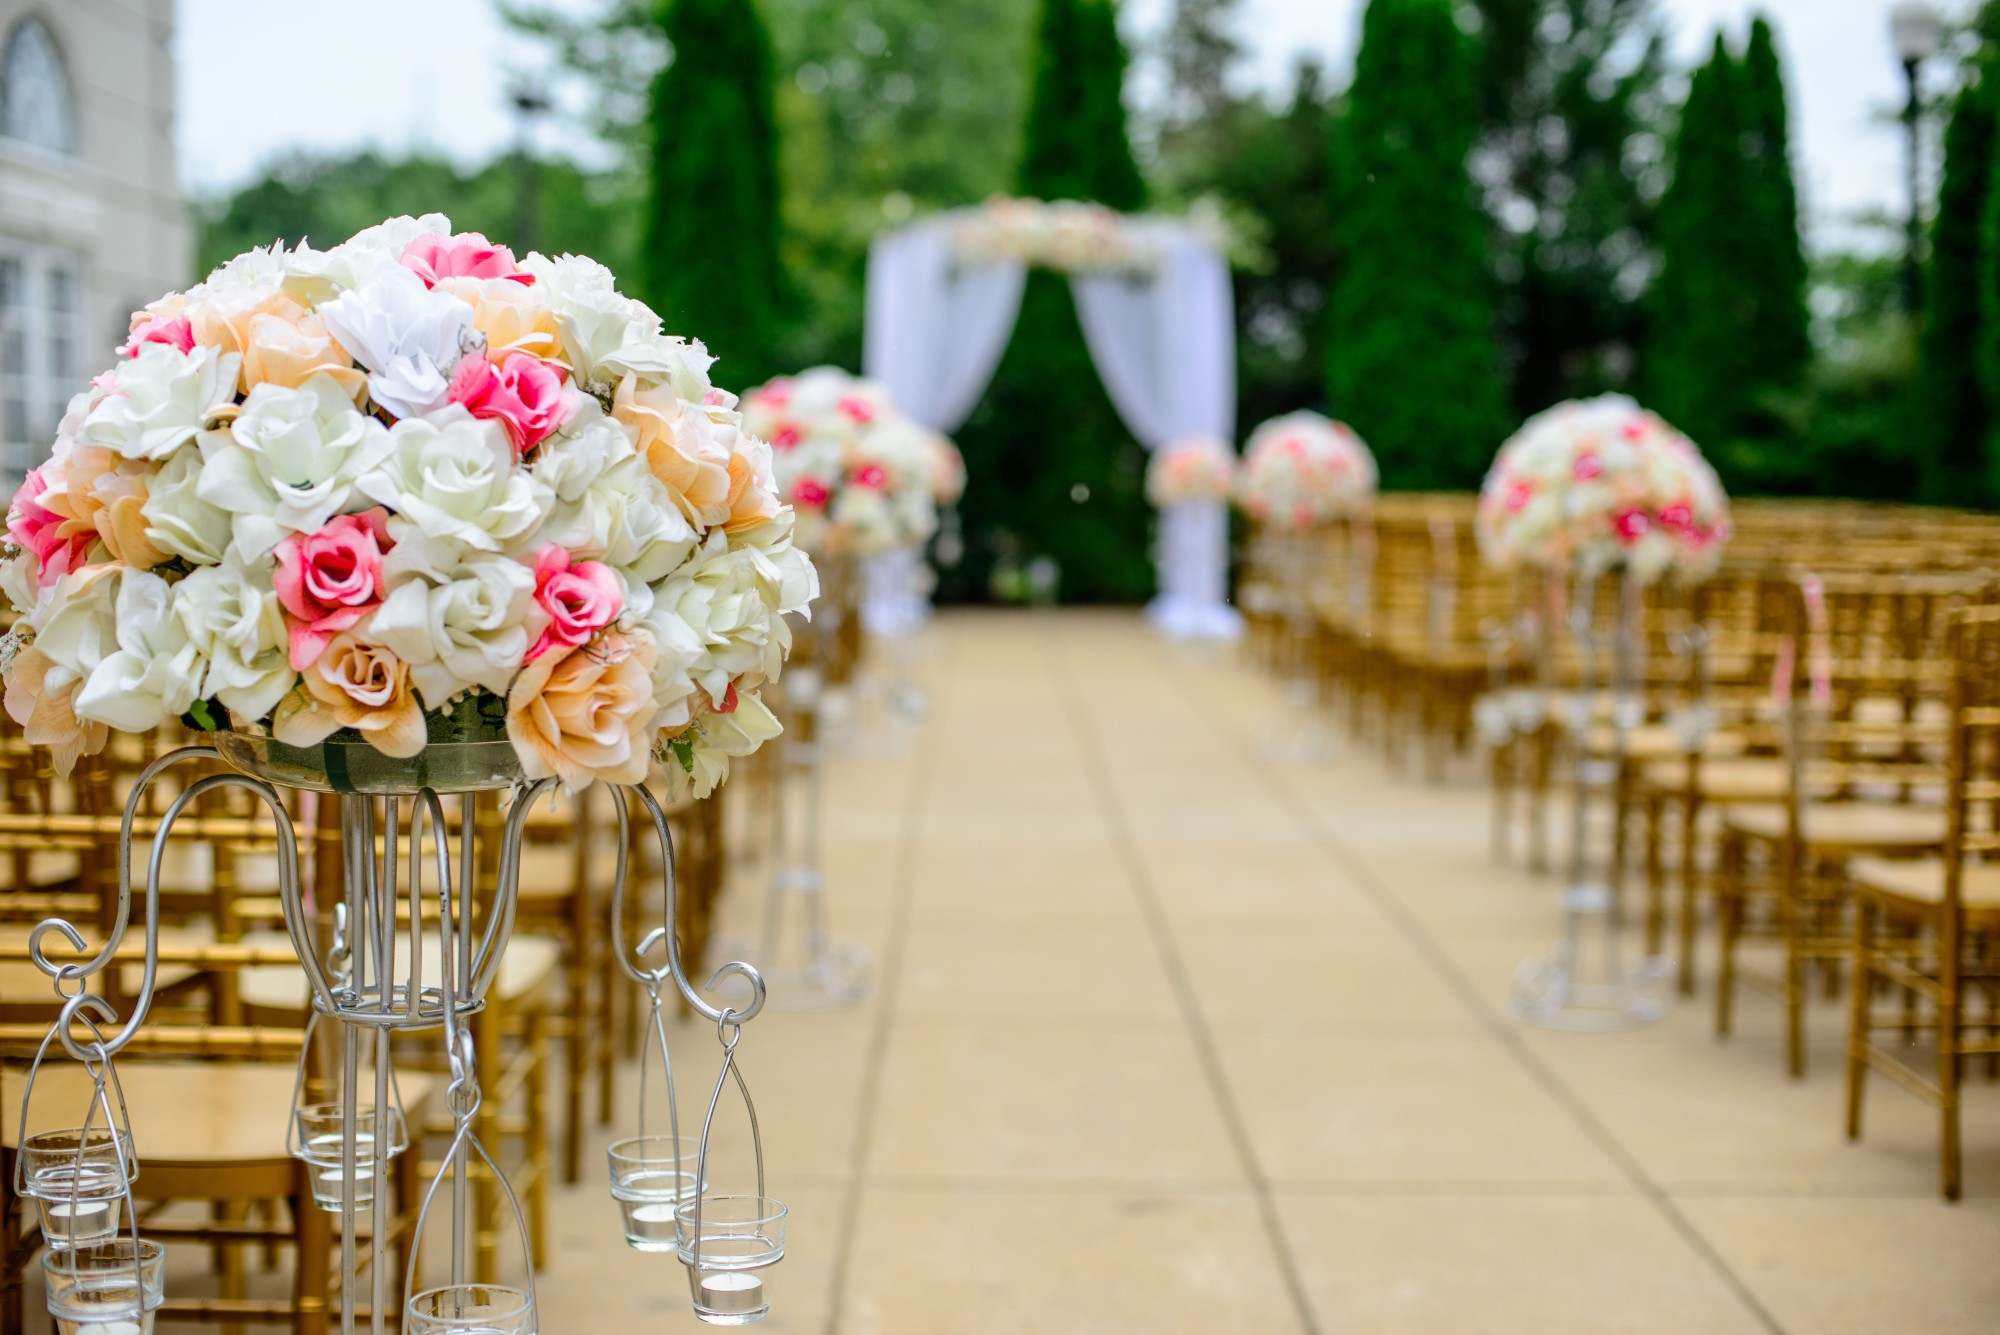 Outdoor Wedding With Wooden Chairs